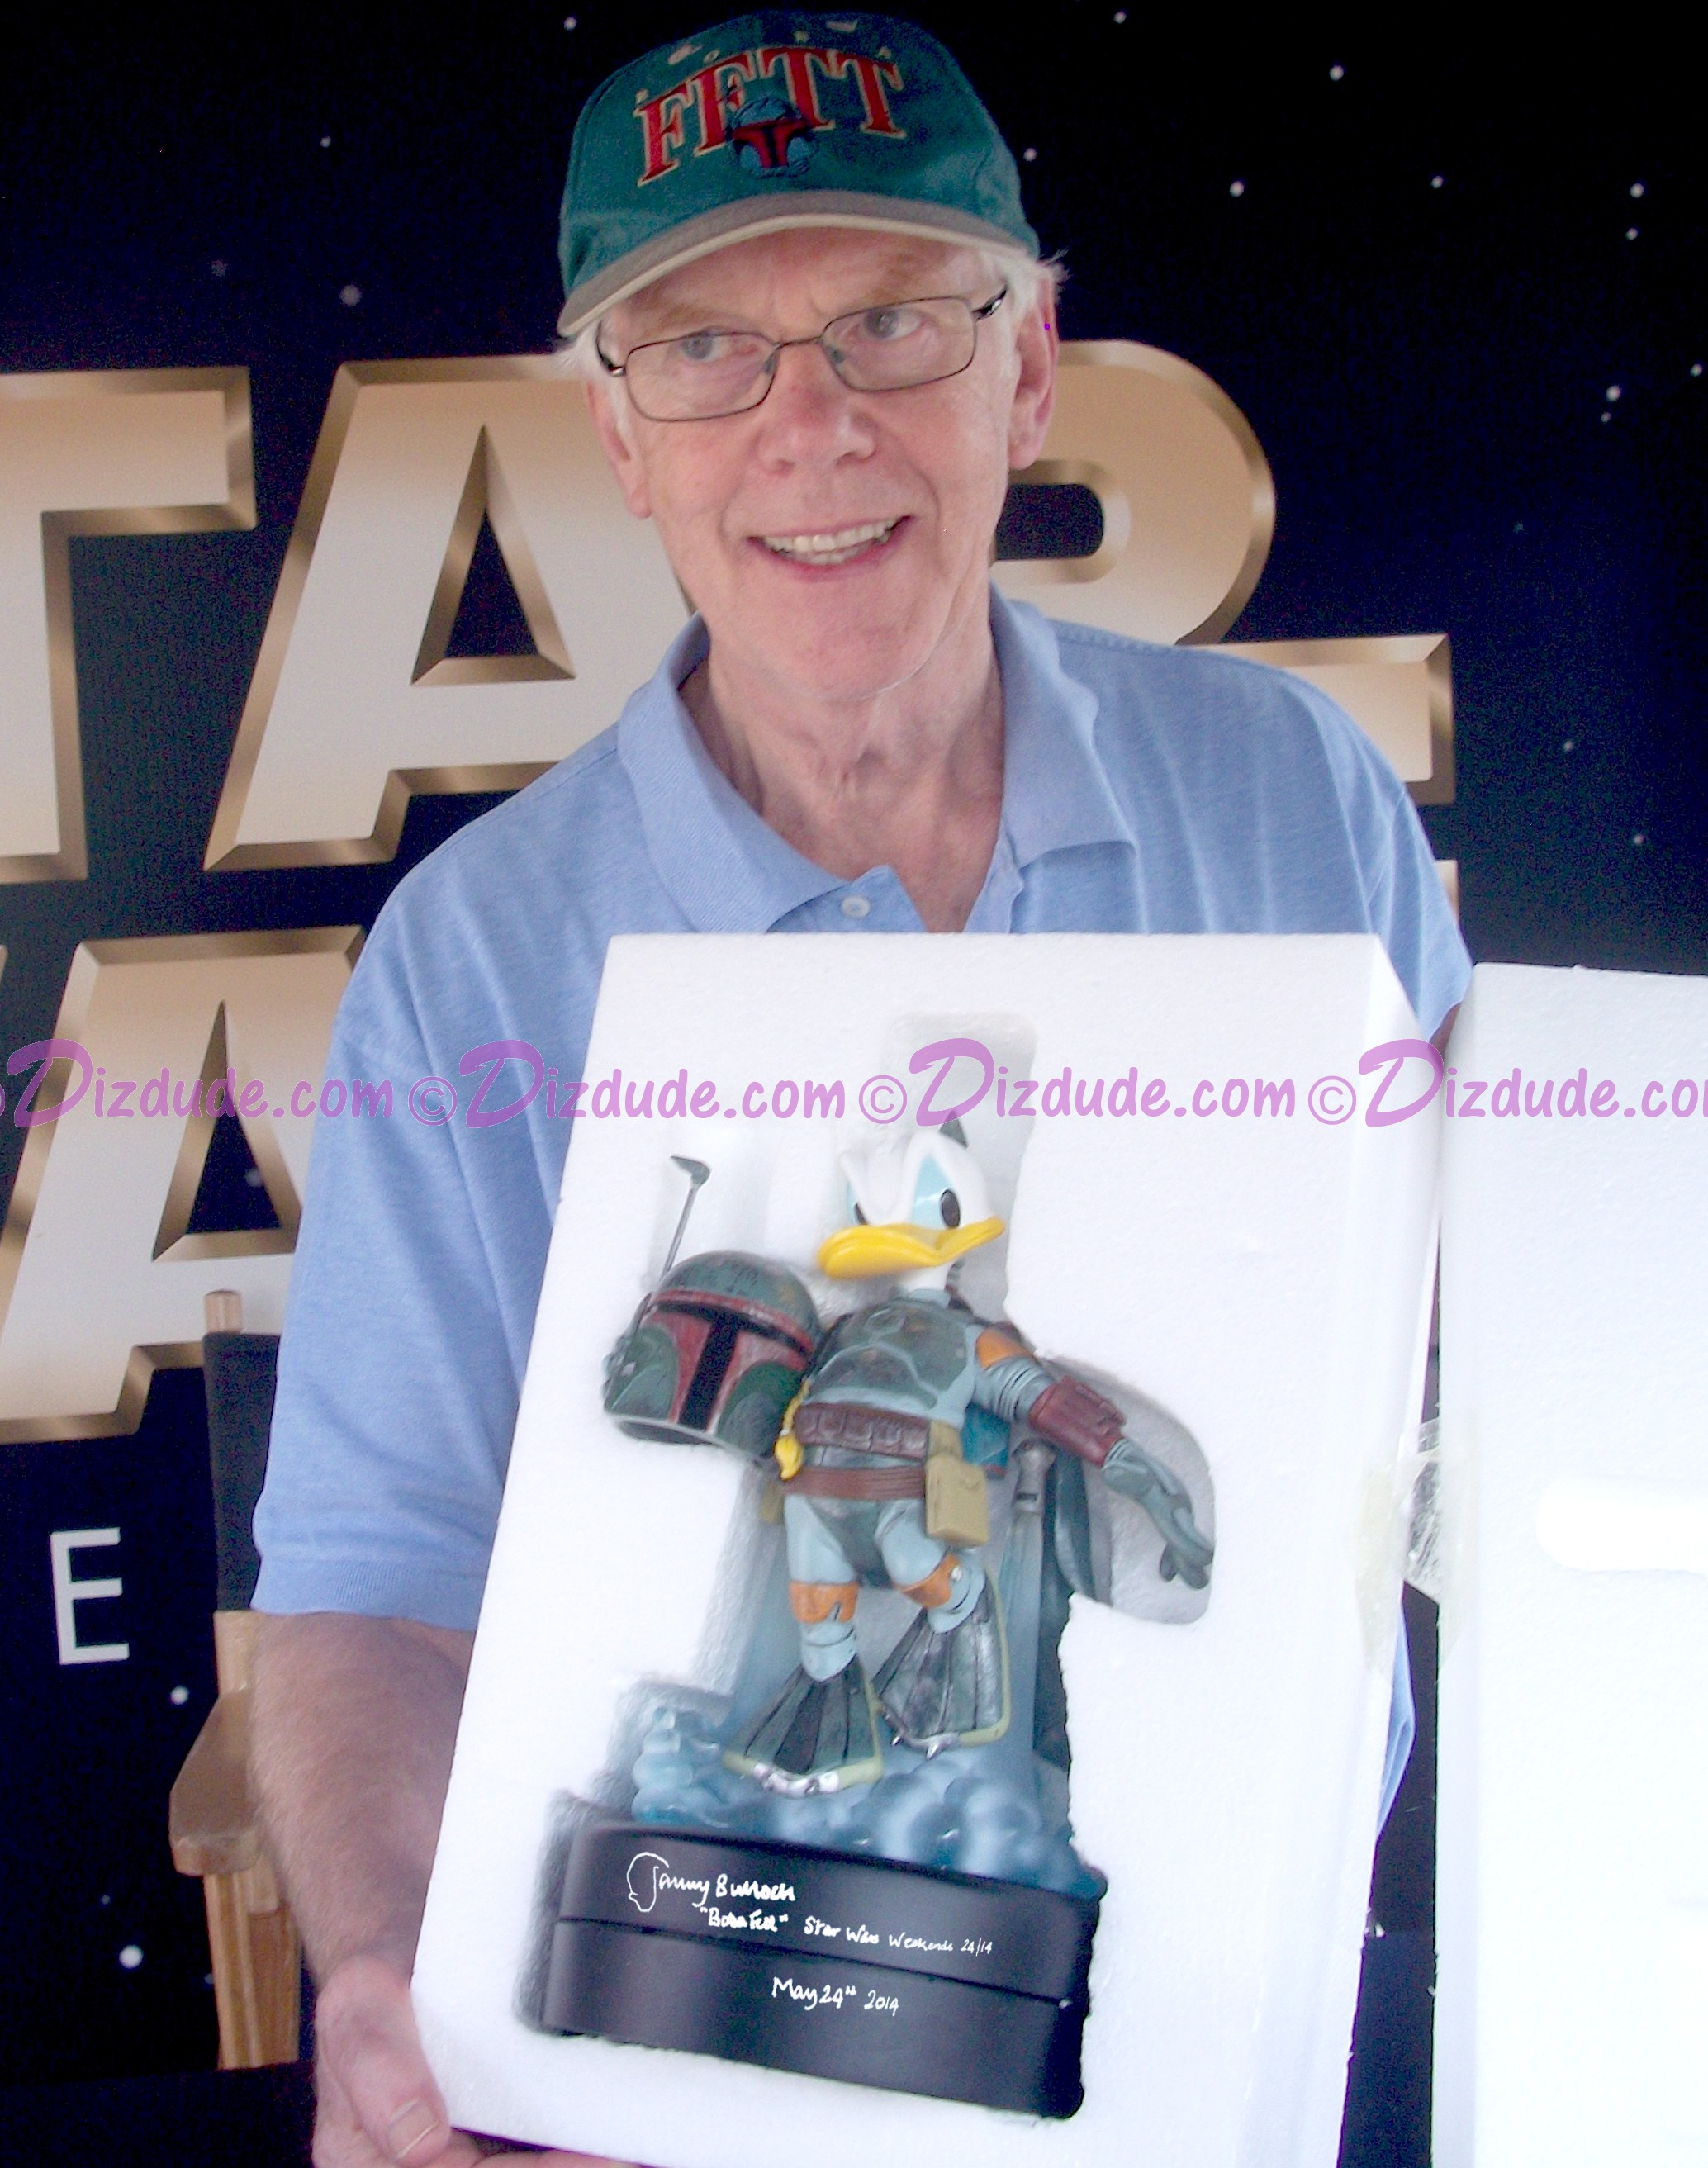 Jeremy Bullock the Star Wars actor who played Boba Fett Holding After Autographing the Donald as Boba Fett Medium Big Fig you will recieve this photo ~ © Dizdude.com